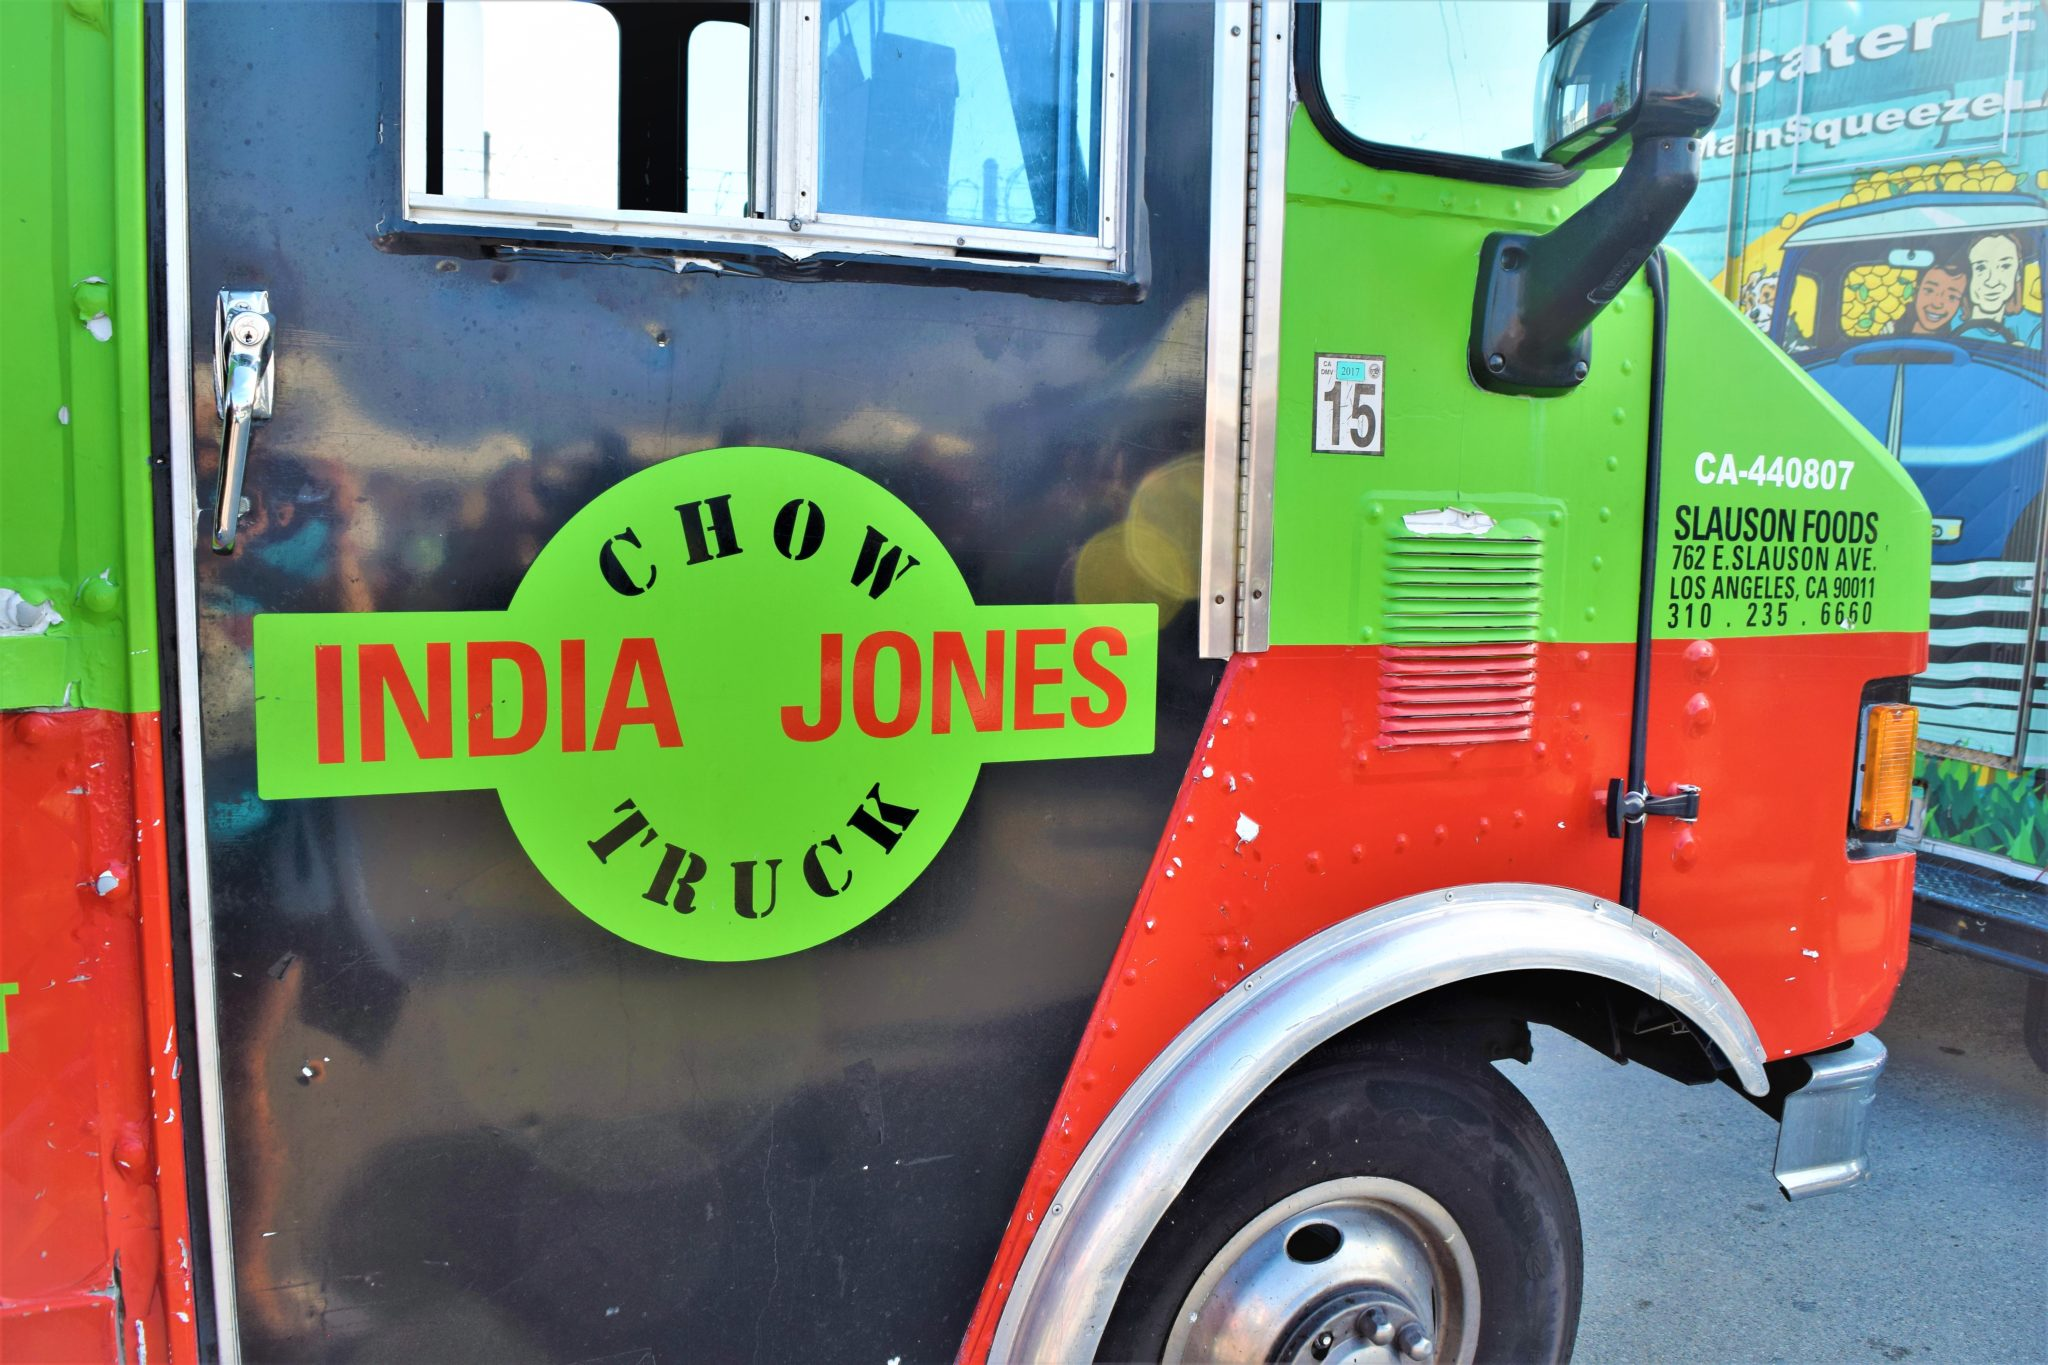 India Jones street truck vegan Indian food Los Angeles